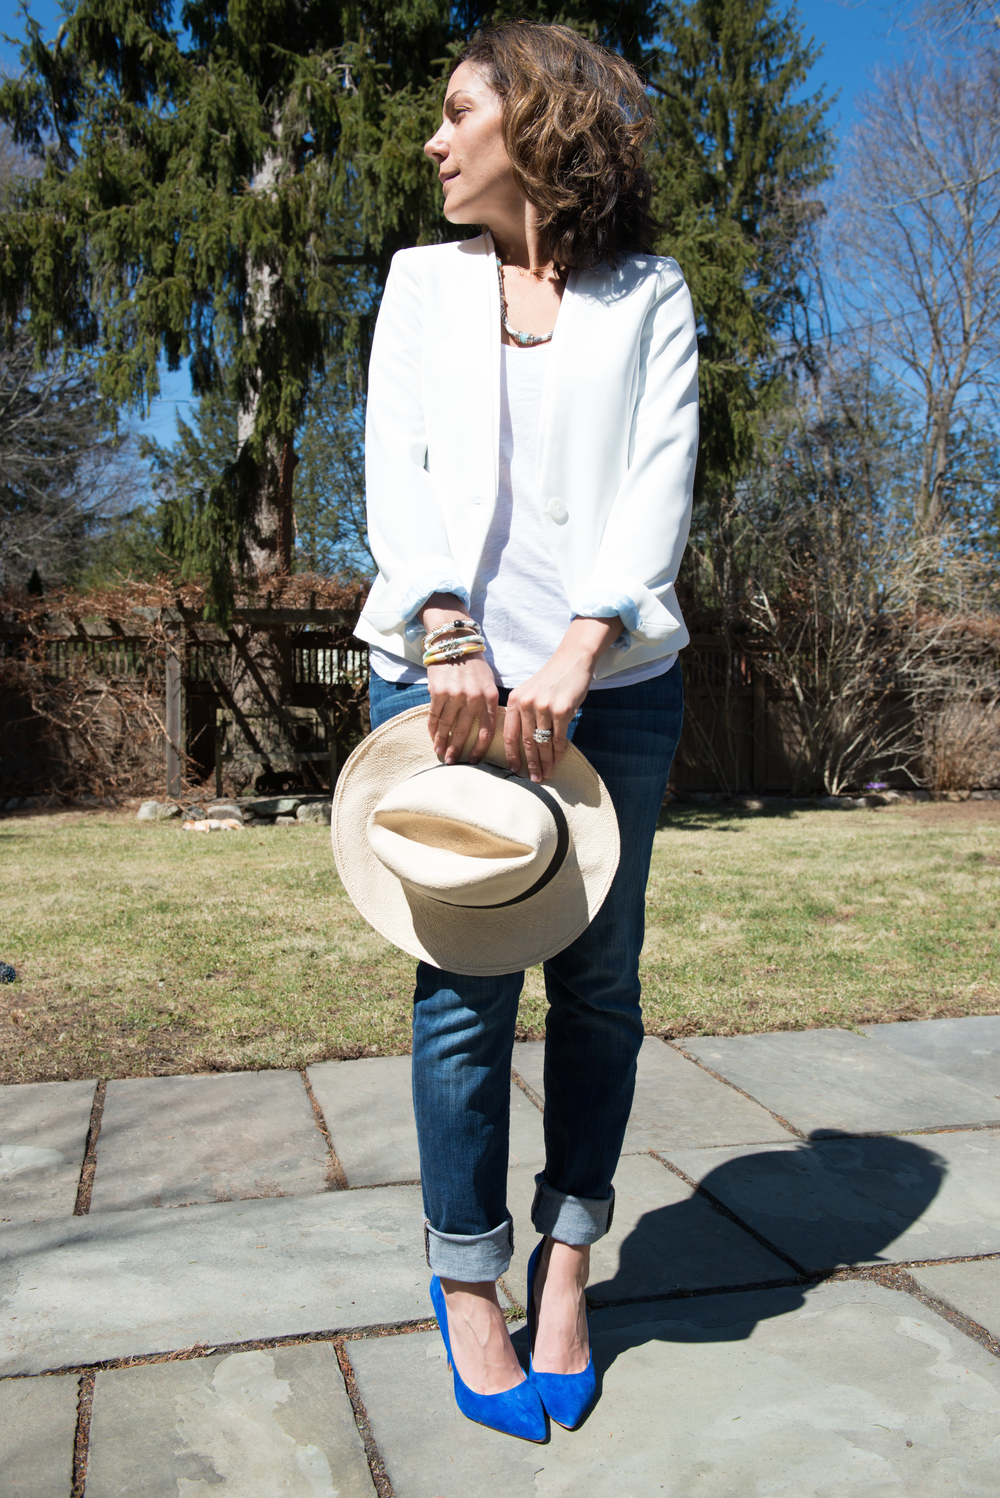 Such a simple look, but with so much power behind it with a pop of color. Razimus VIVE Neck to Wrist (part of giveaway) + Razimus Fabric Bangles (here) Zara white blazer (here), StyleMint white tank (here), Joe's Boyfriend Jeans (similar here), J.Crew Panama Hat (similar here), Shoemint Blue Suede shoes (similar here). Photography by Will Mann Photography.